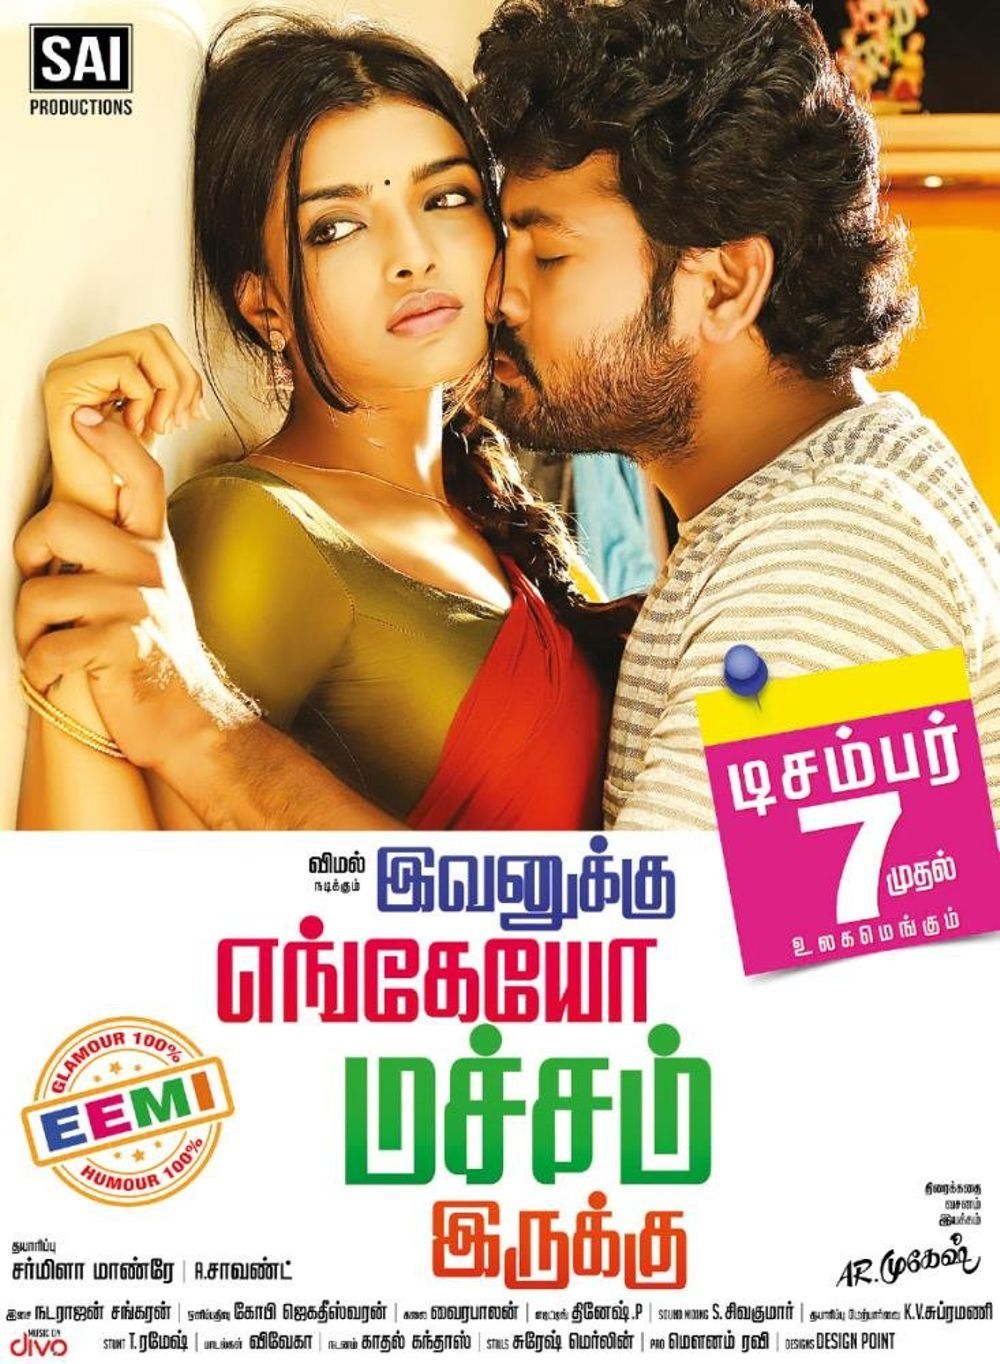 Ivanukku Engaiyo Macham Iruku Movie Review Tamil Movie Review